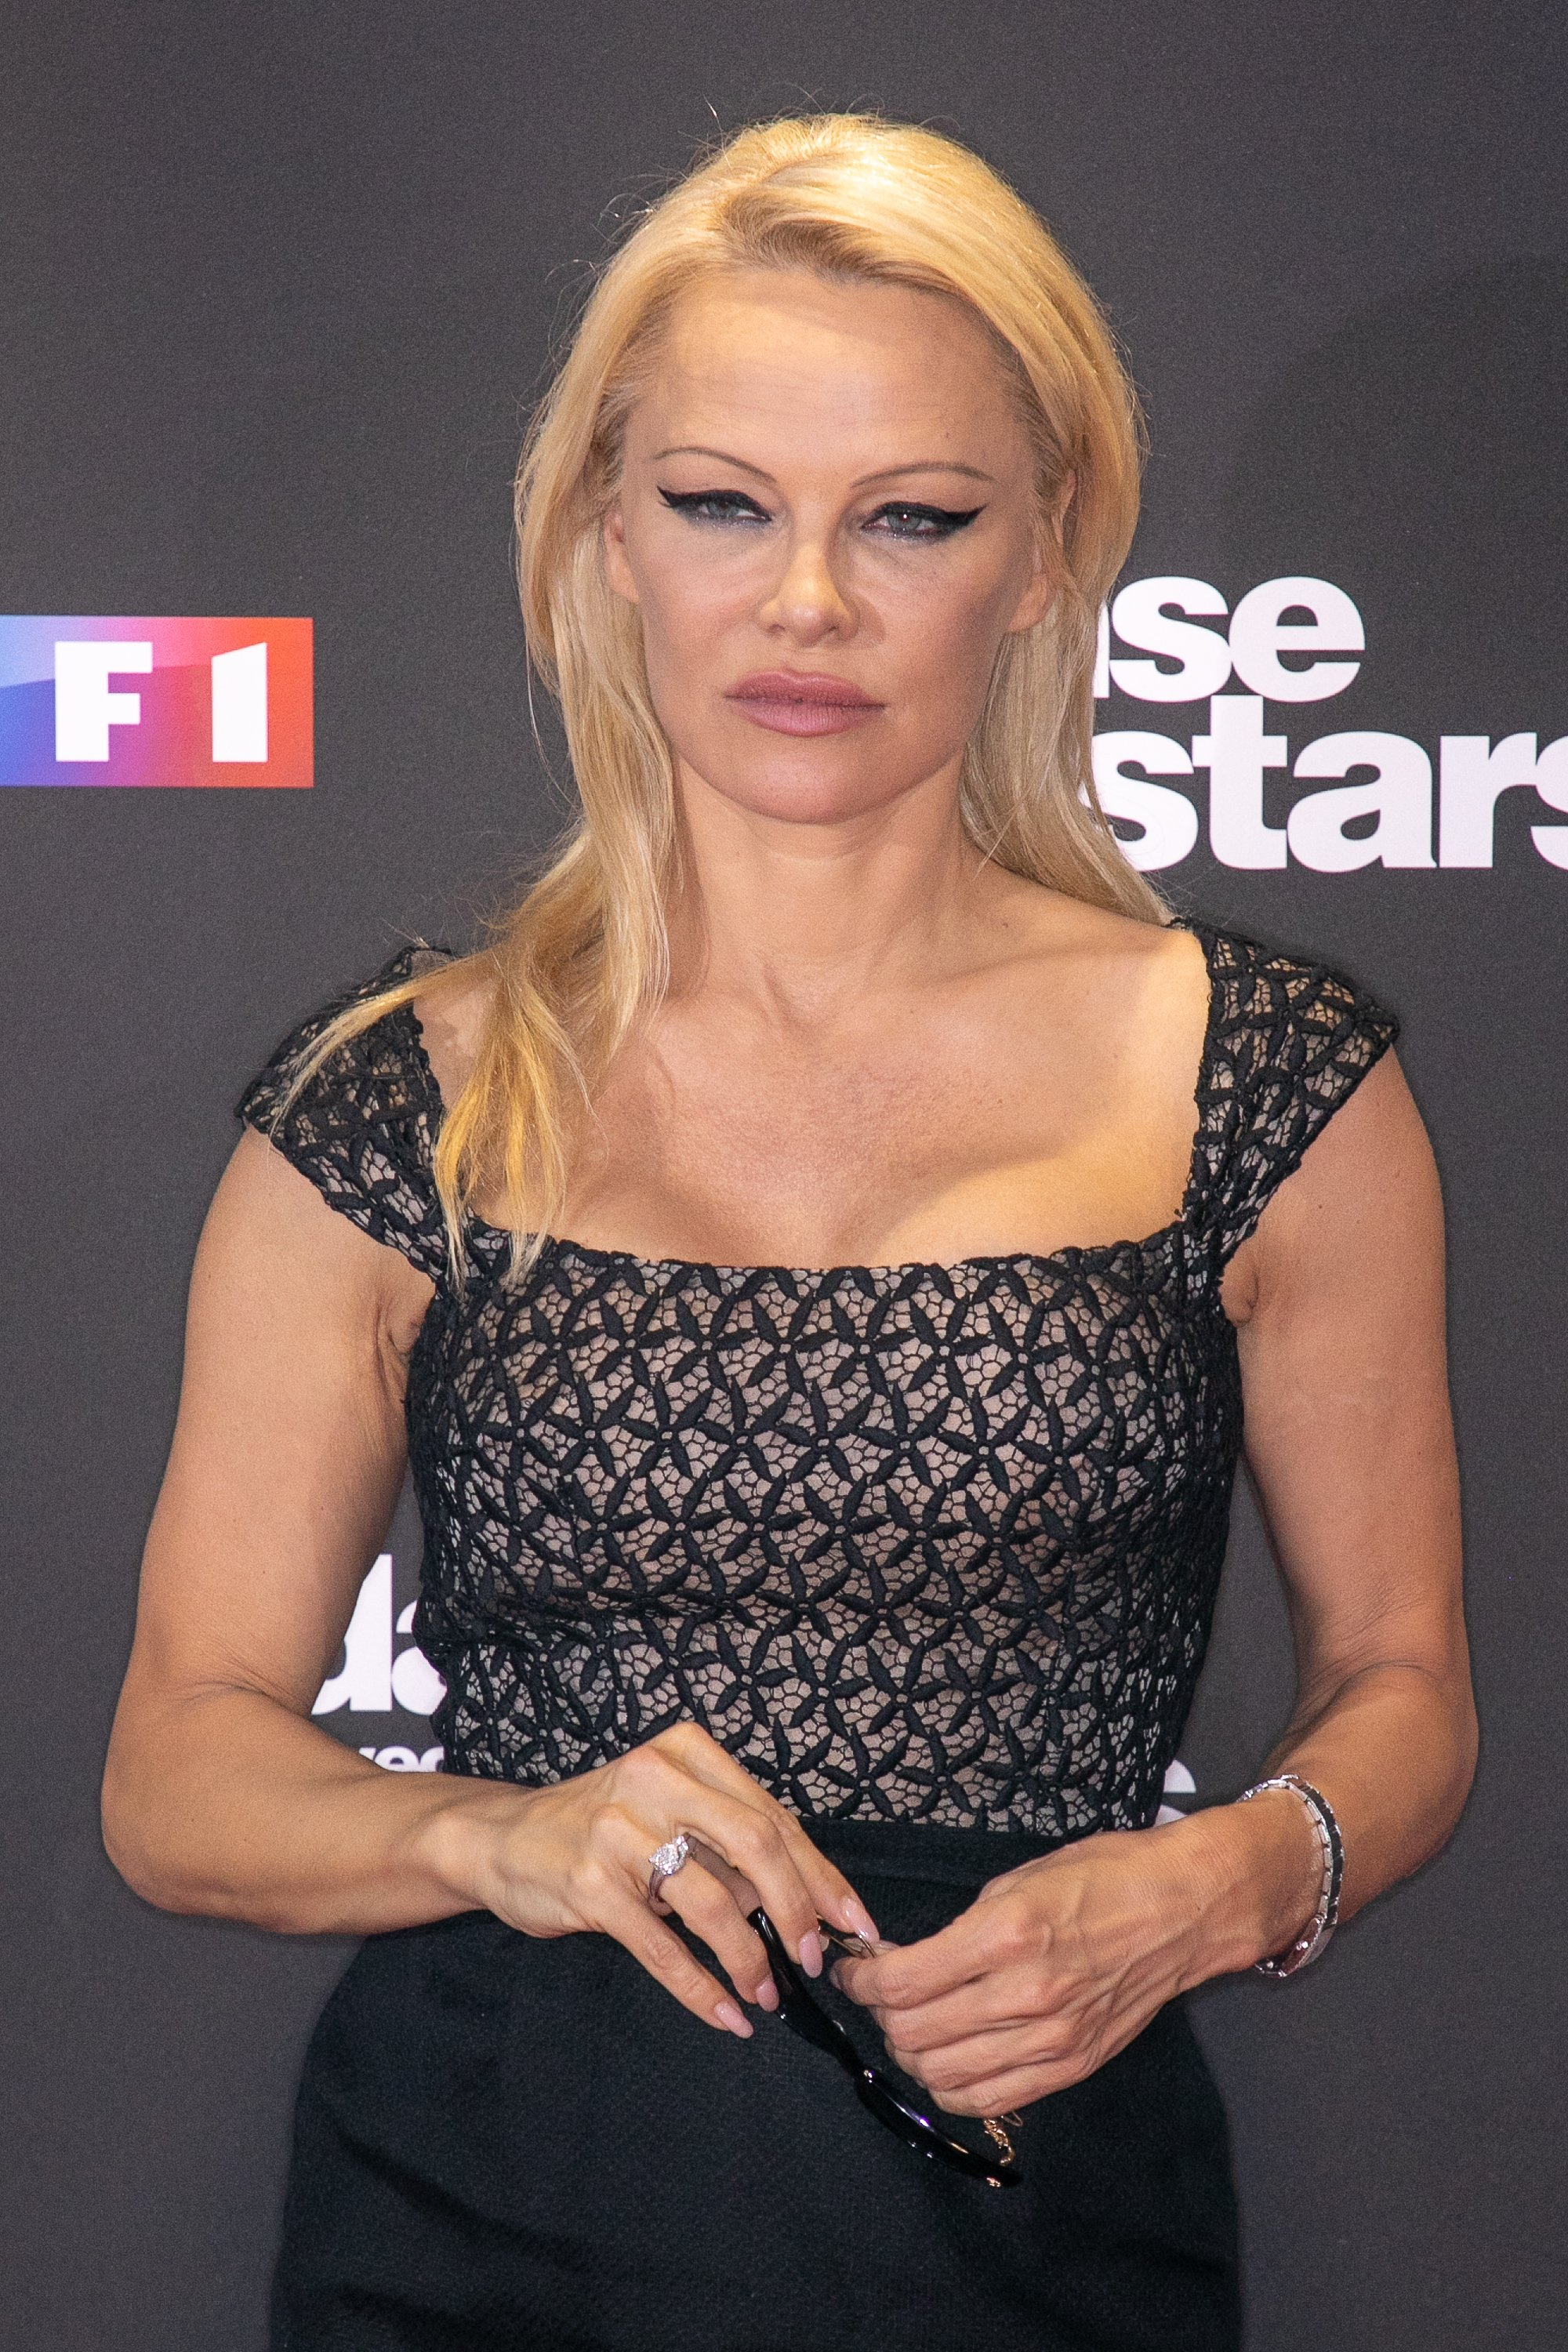 Pamela Anderson attends the 'Danse Avec Les Stars' photocall at TF1 TV studios on September 11, 2018 in Paris, France | Photo: Getty Images